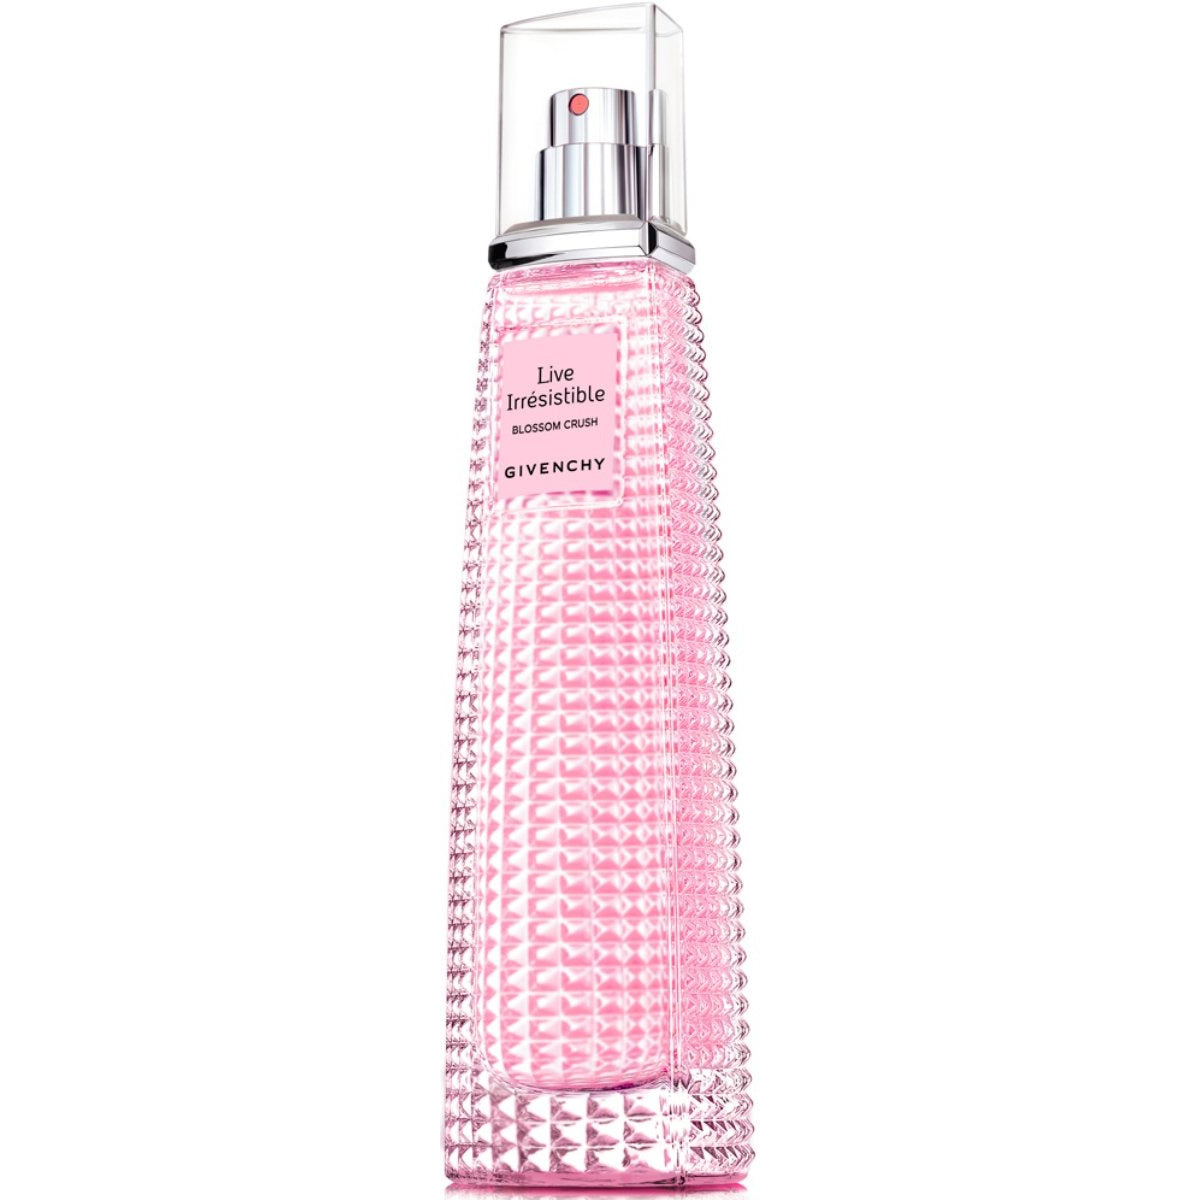 LIVE IRRESISTIBLE BLOSSOM CRUSH by Givenchy for her EDT 2.5 oz New Tester